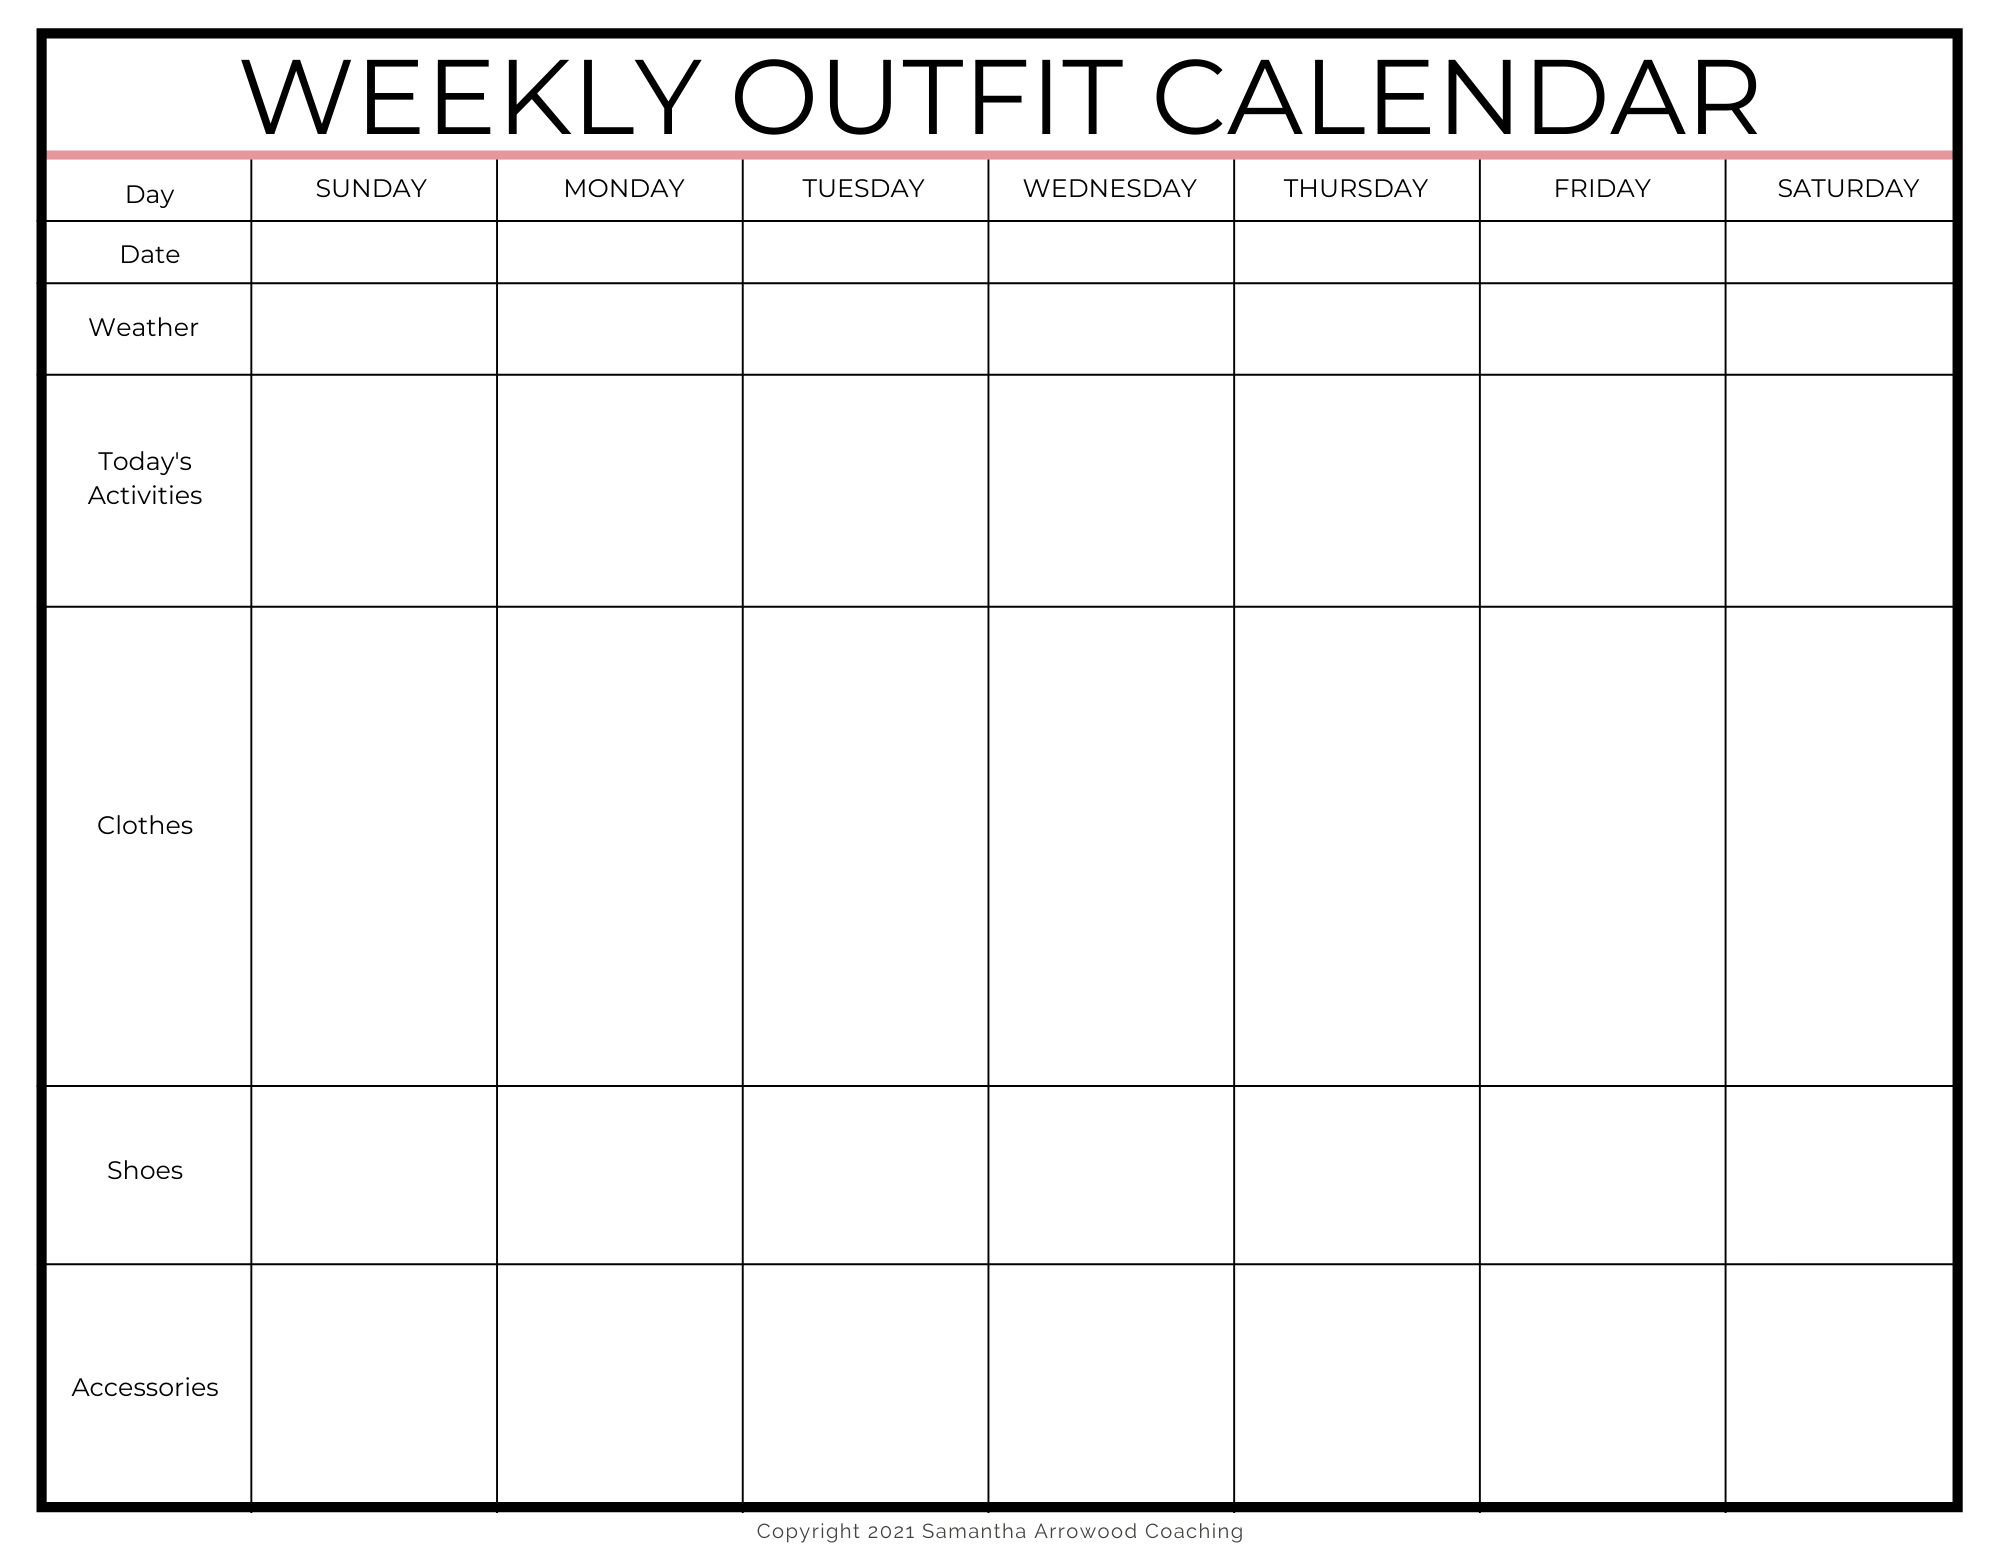 Weekly-Outfit-Calendar-4